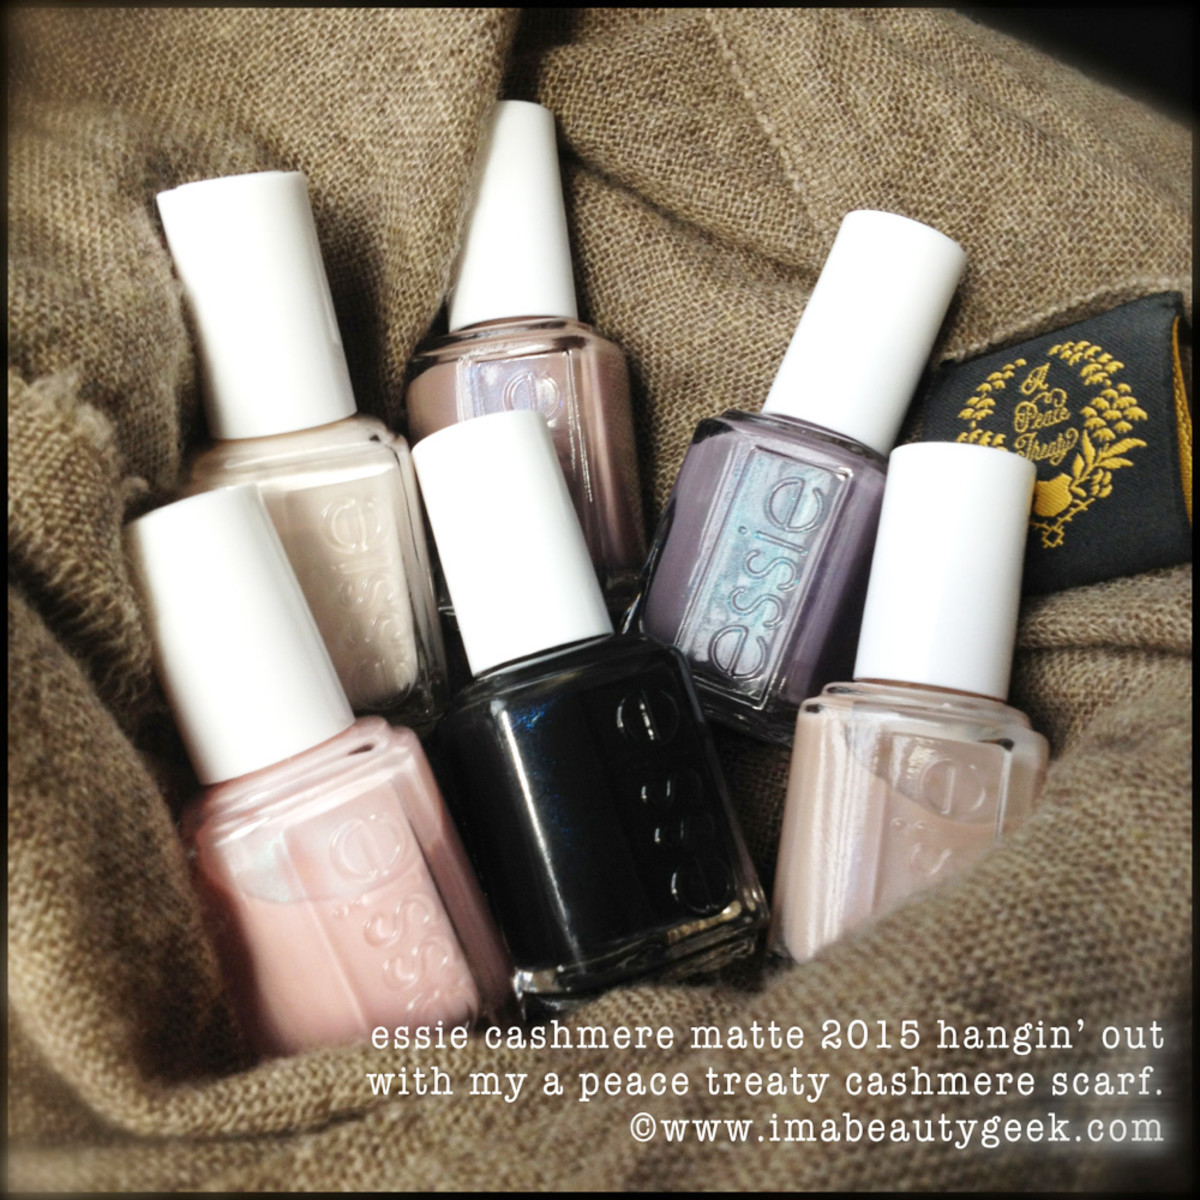 Essie-Cashmere-Matte nail polish giveaway_does NOT include scarf.jpg